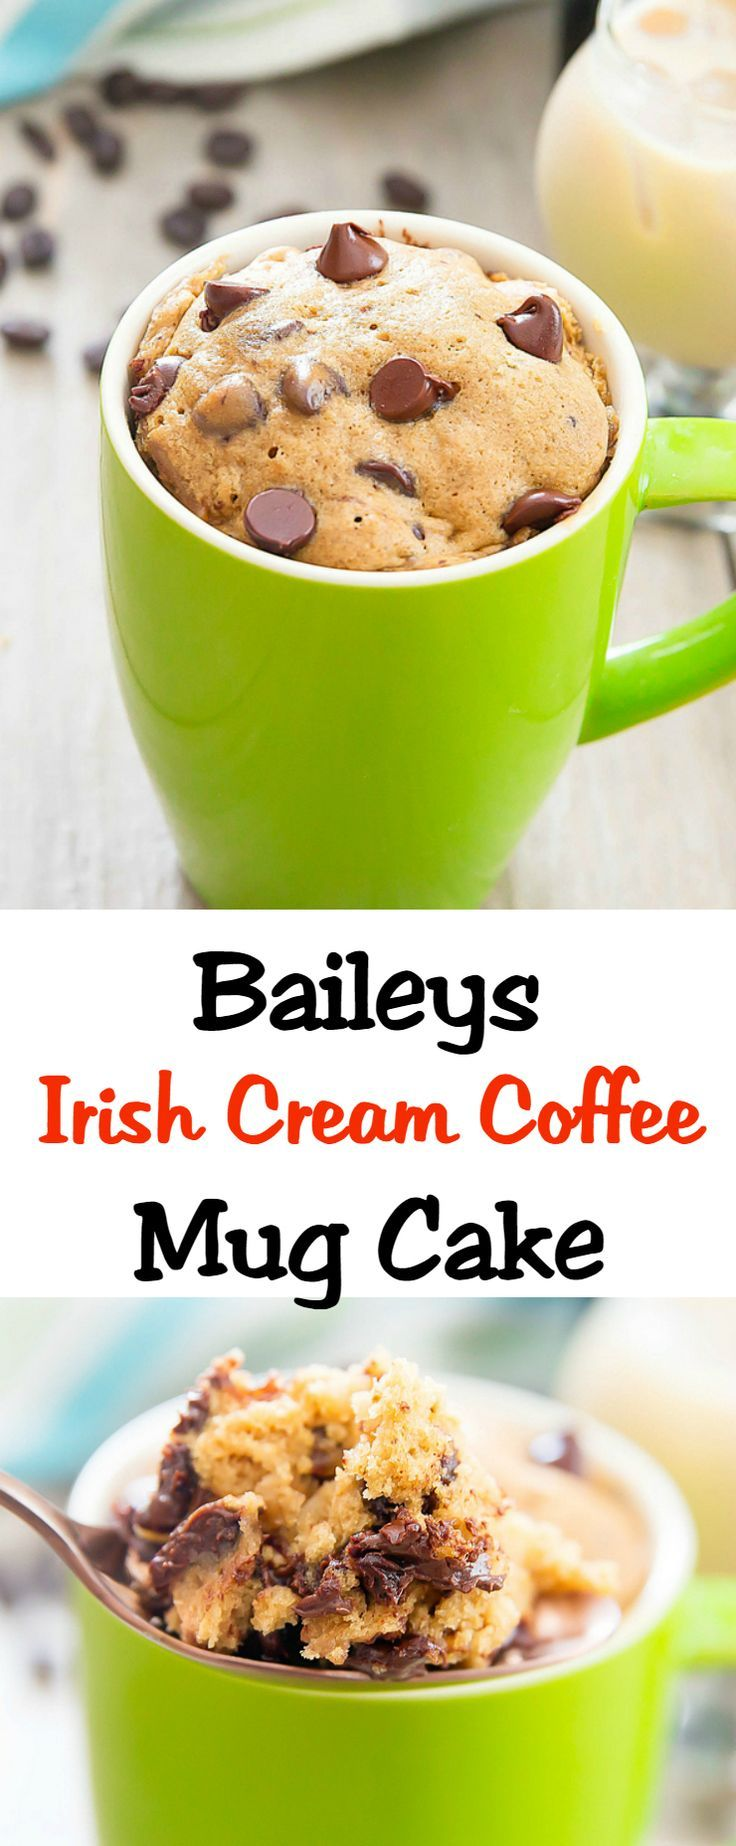 Baileys Irish Cream Coffee Mug Cake Recipe in 2020 Mug